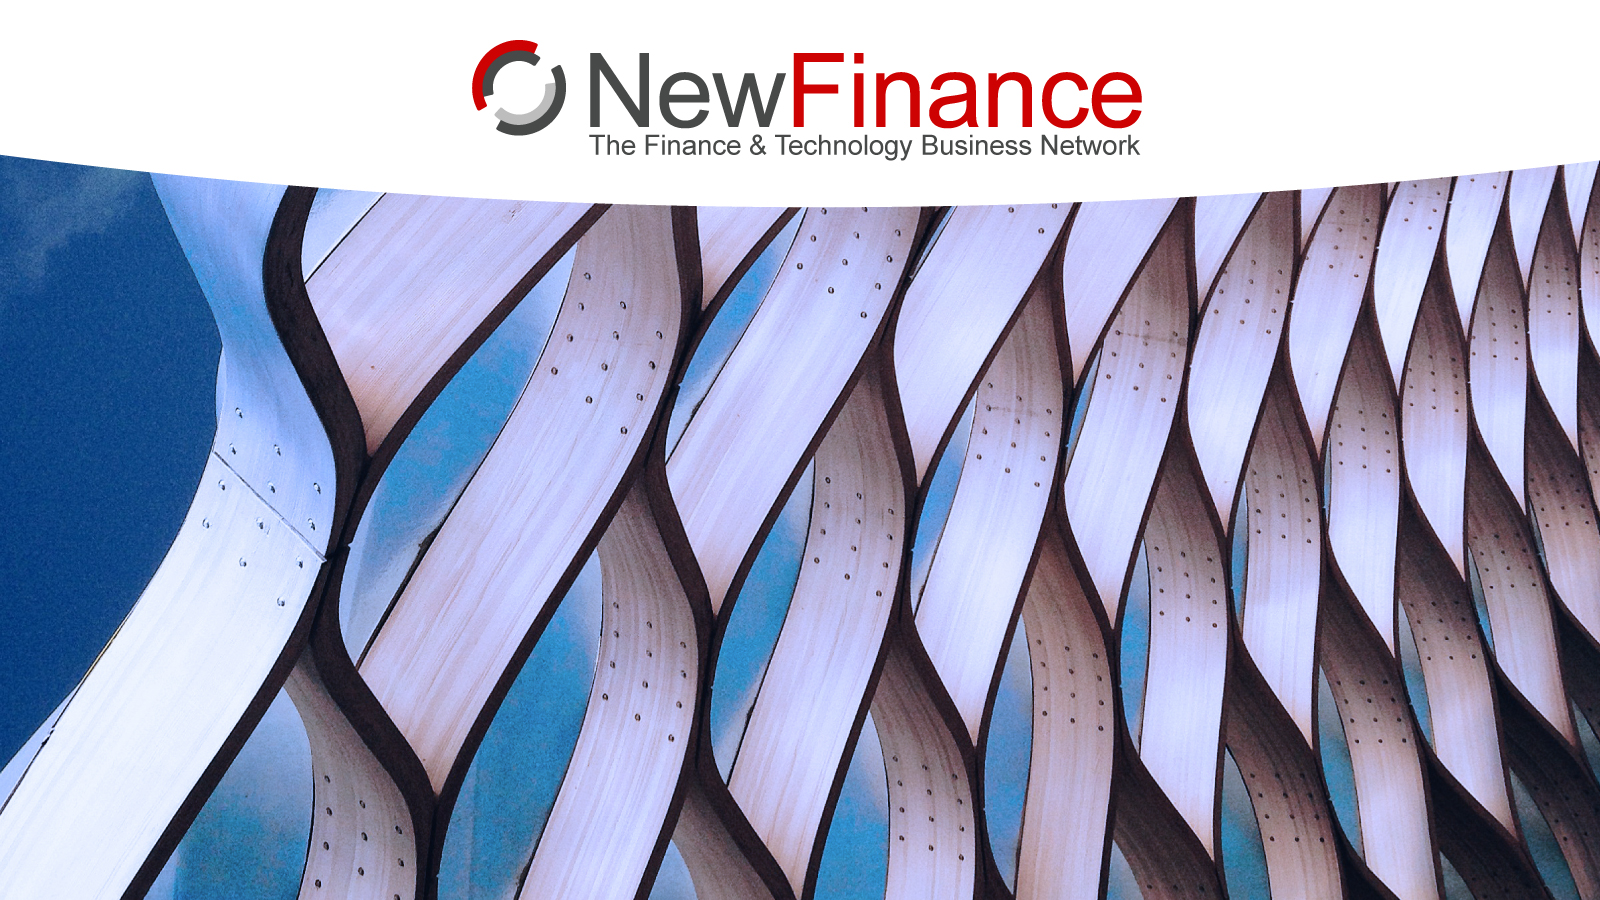 NewFinance Paris